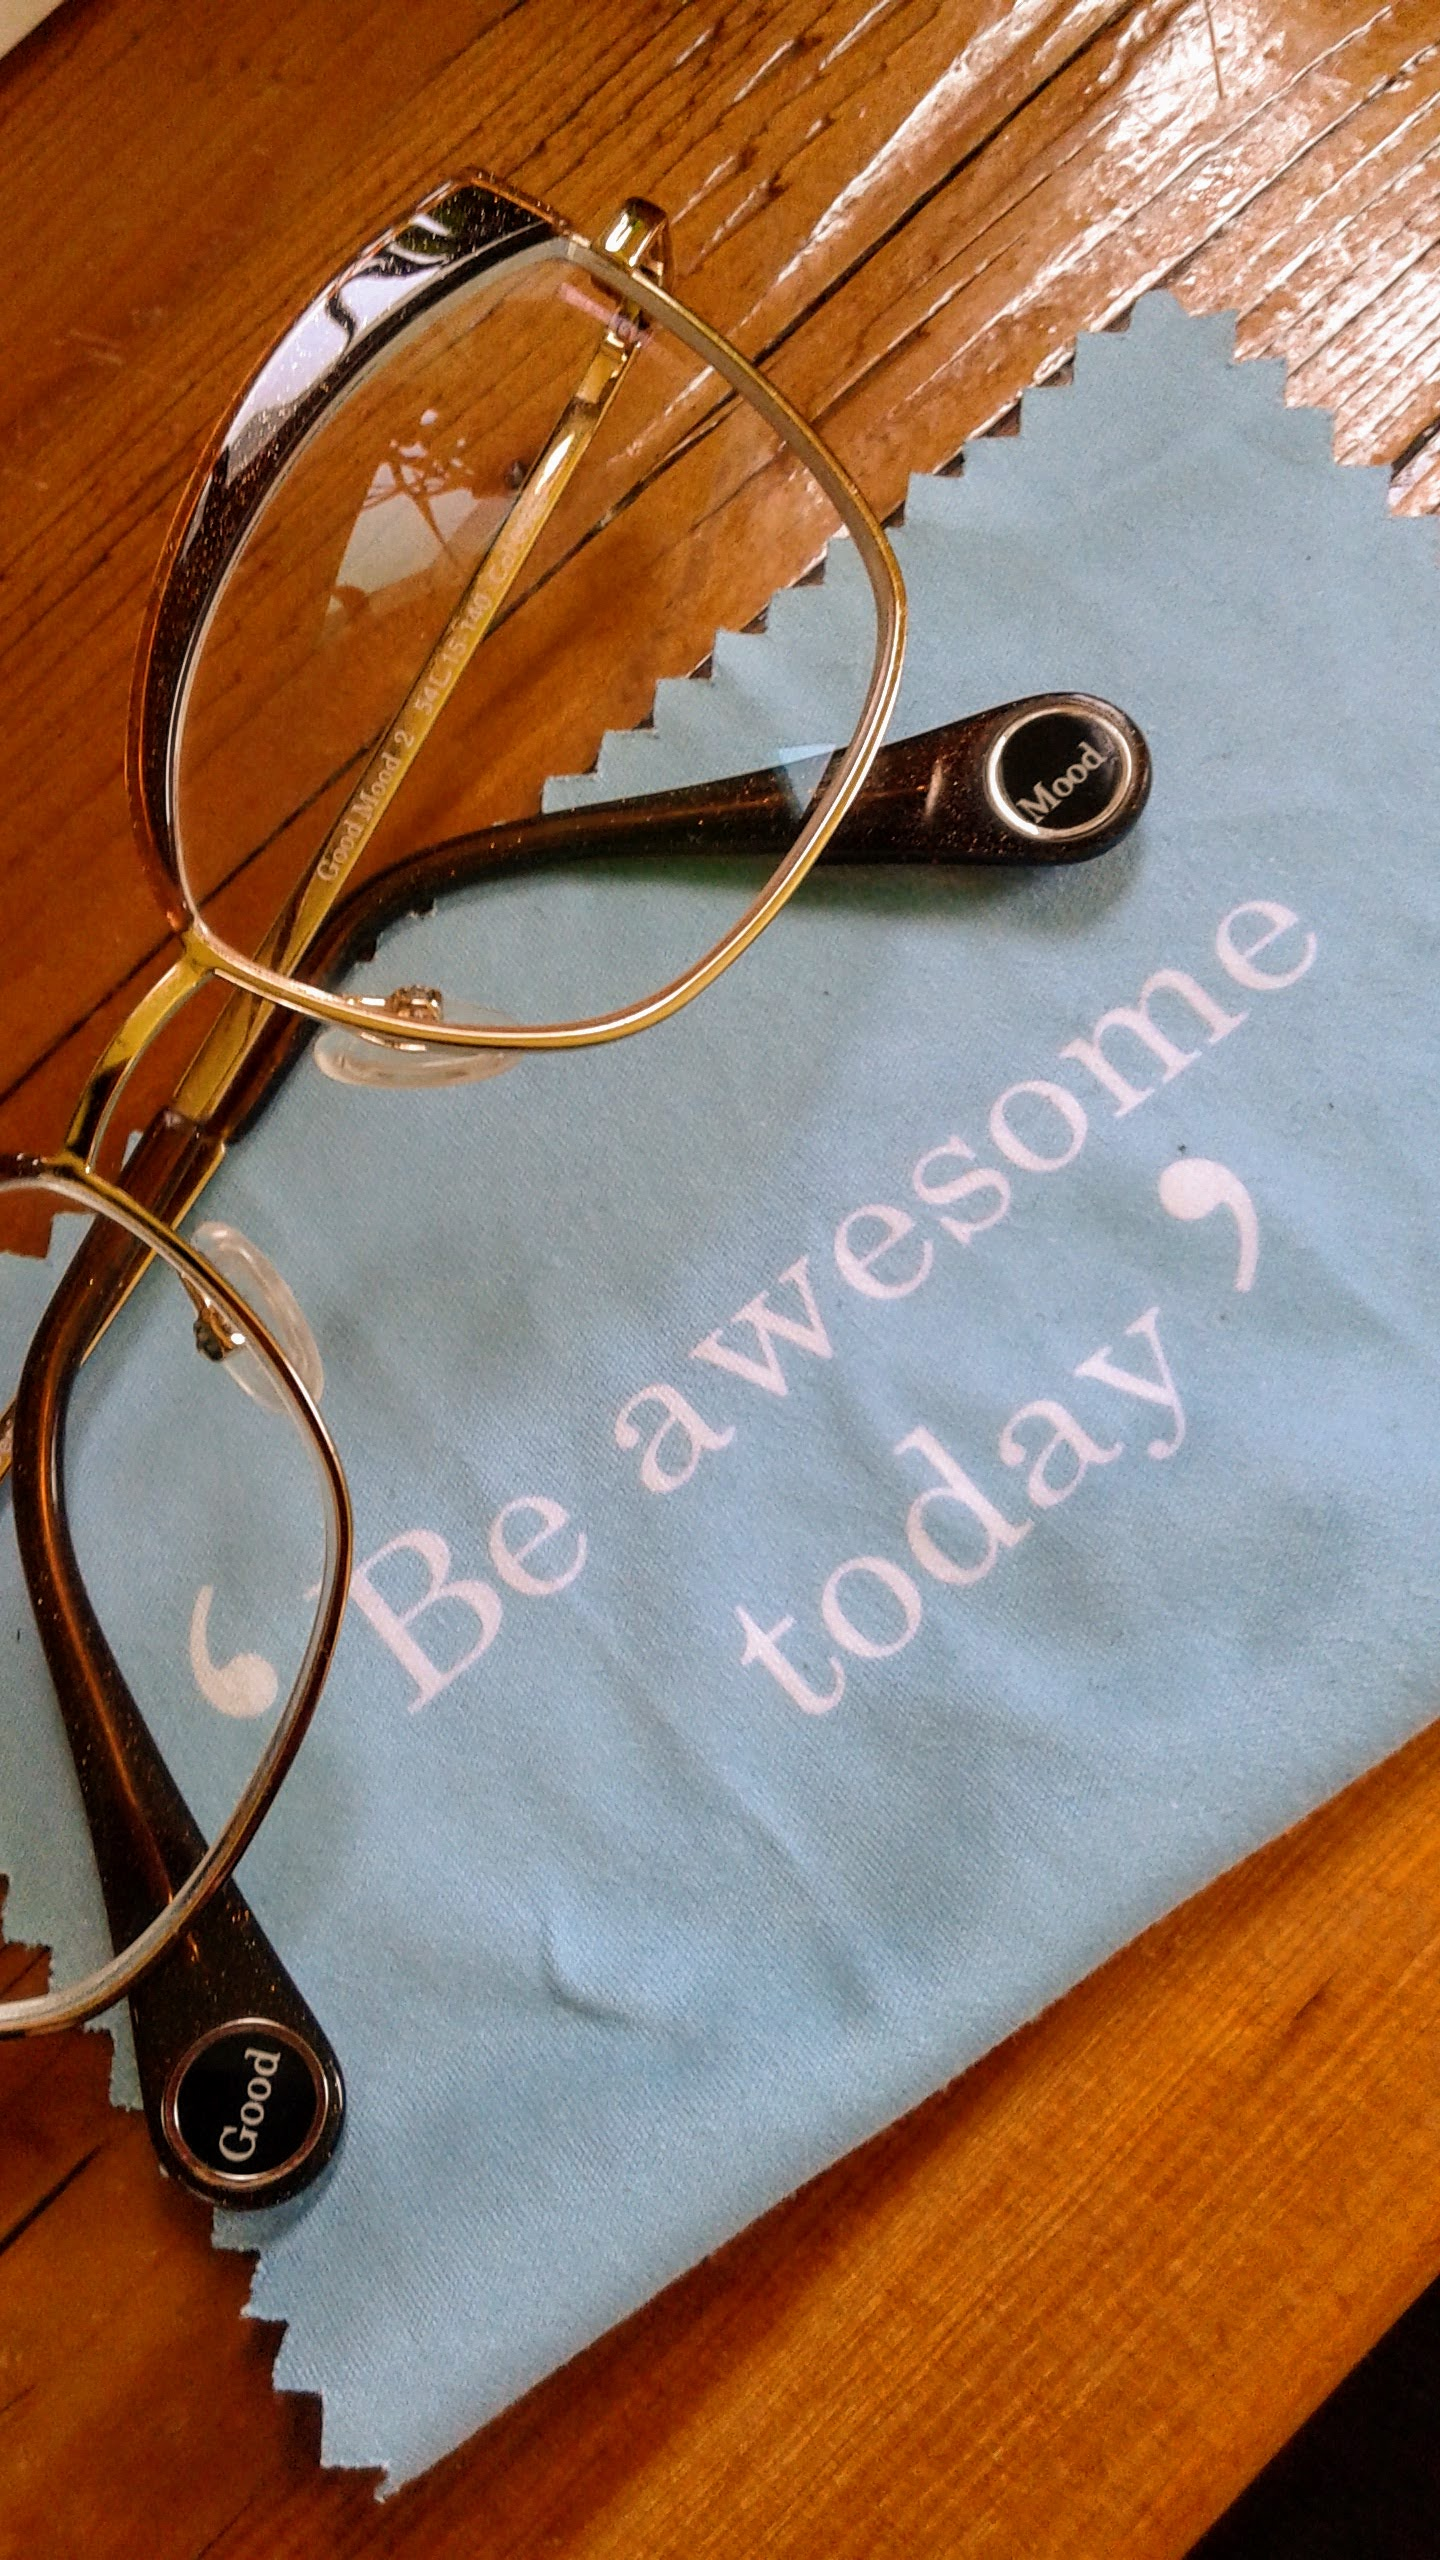 Good Mood! Be awesome today!